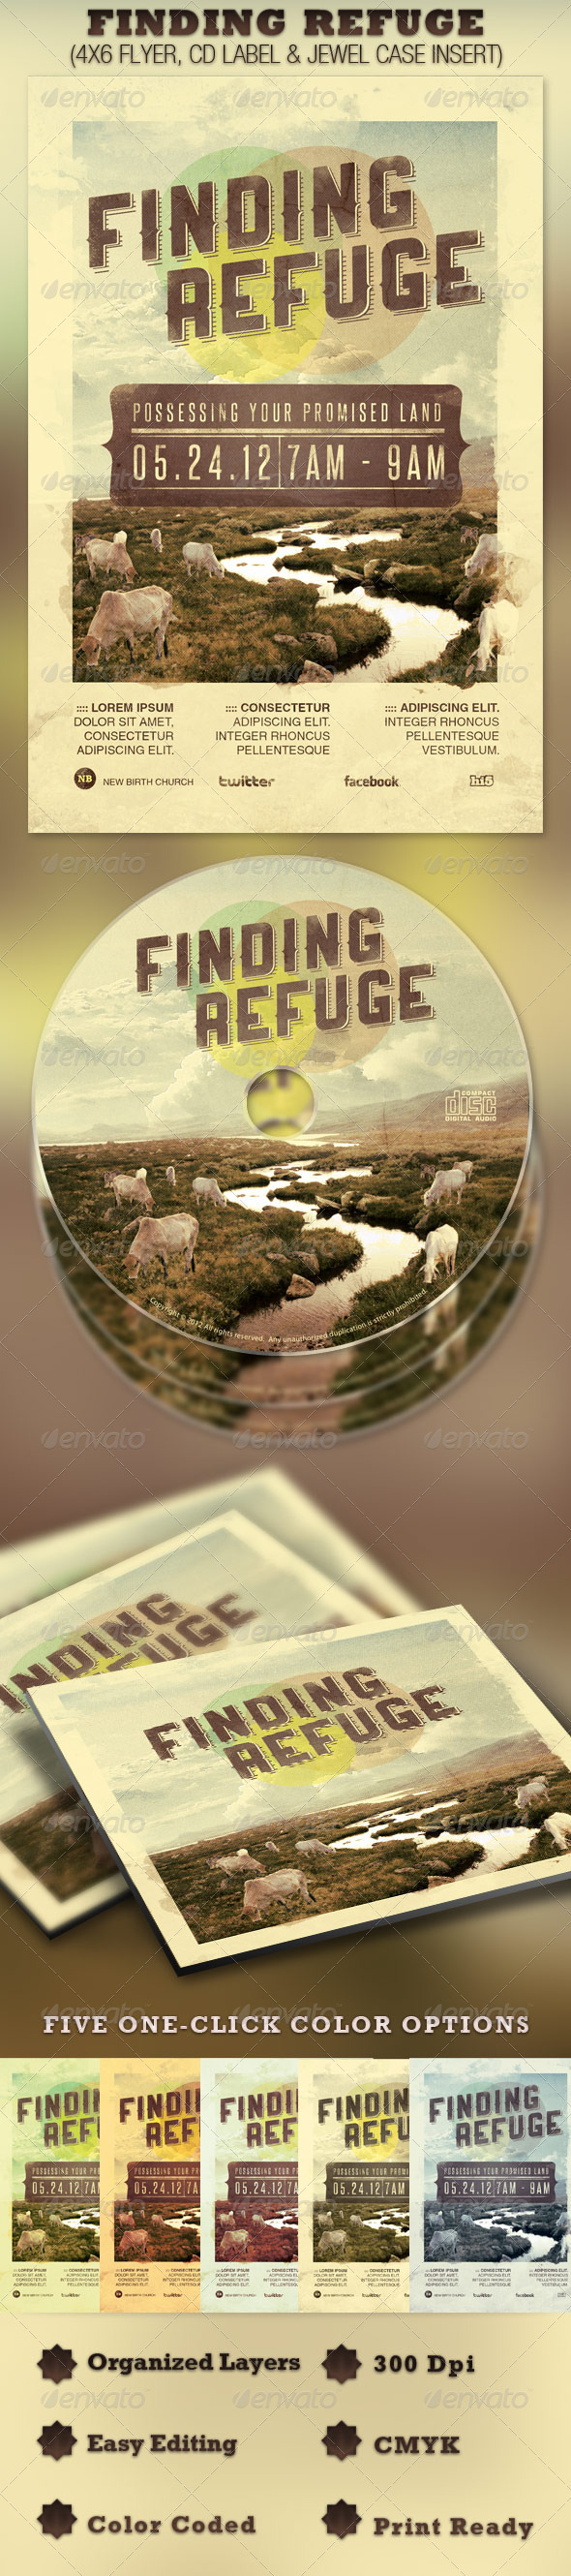 Finding Refuge Flyer and CD Template - Church Flyers